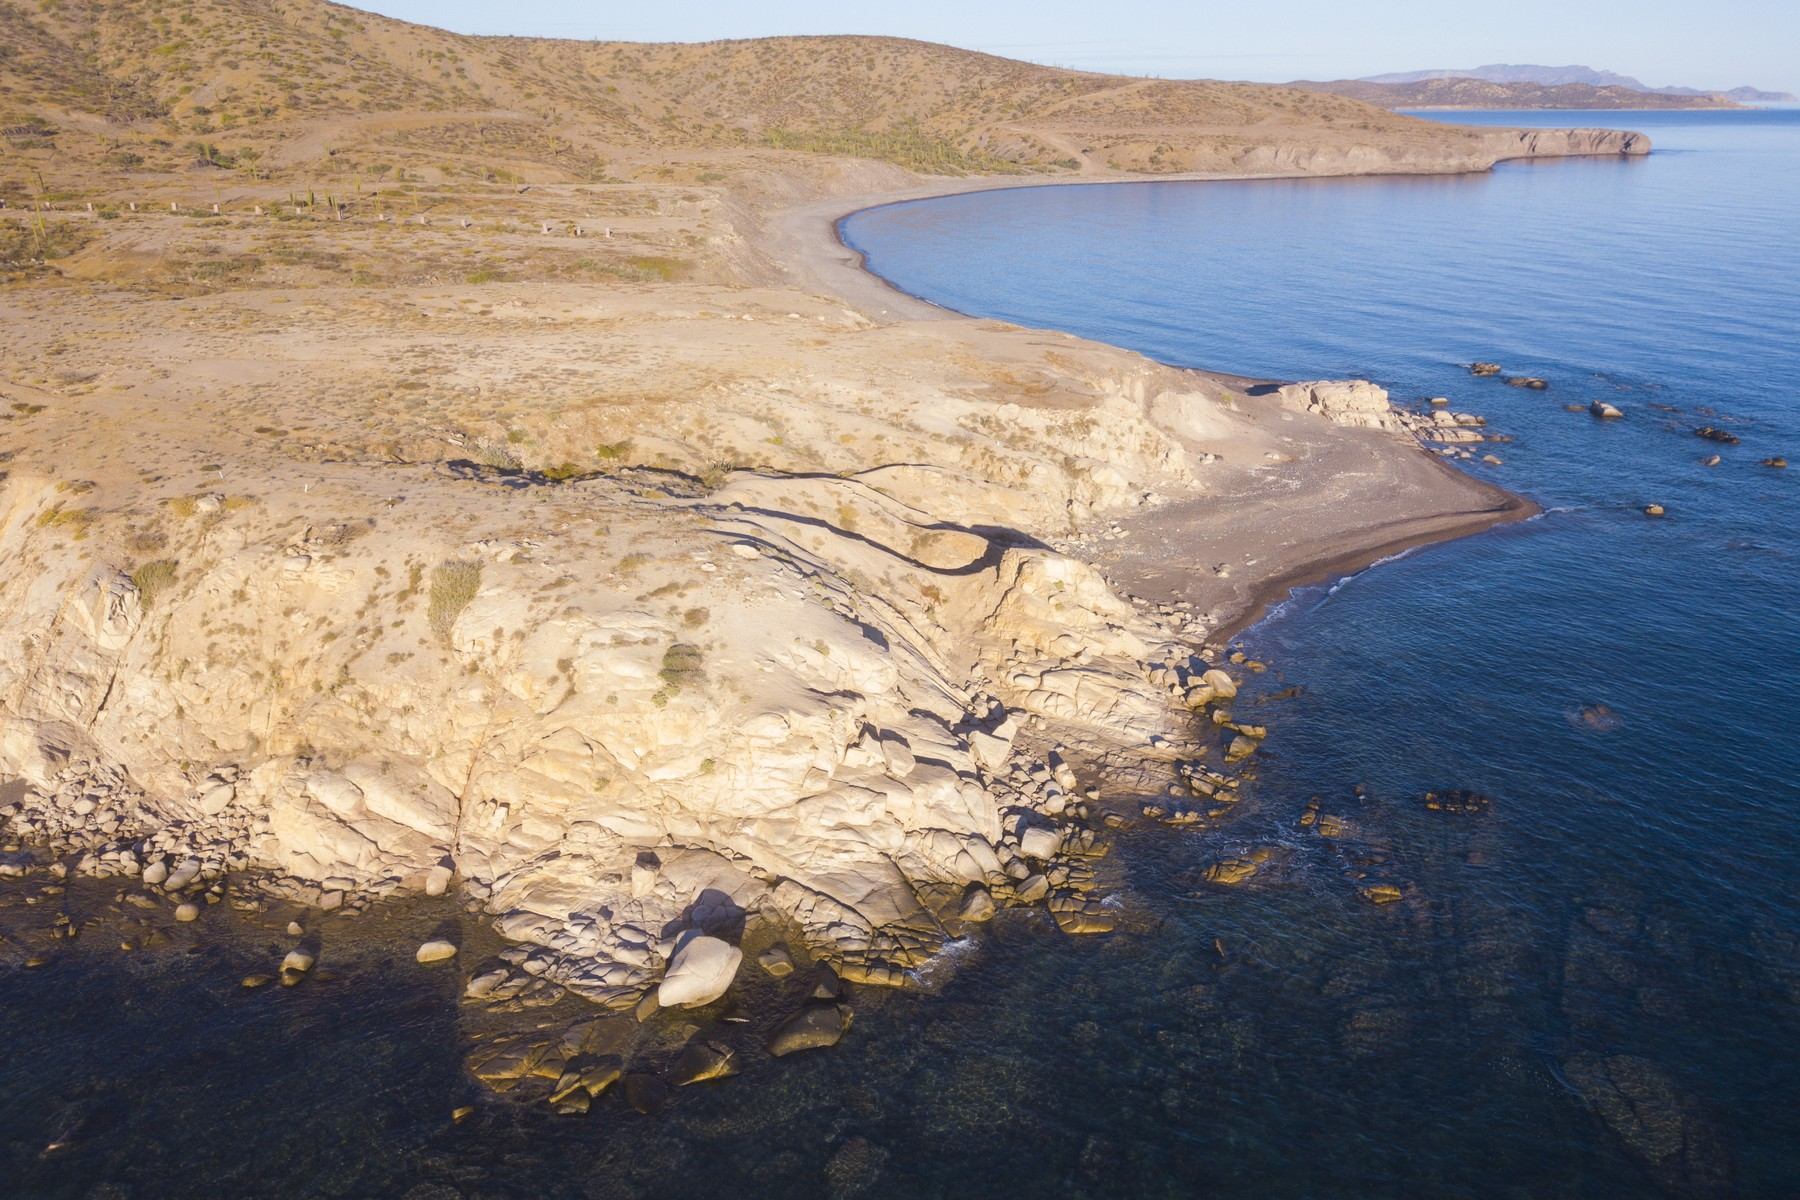 Land for Sale at Seabank Development Parcel La Paz, Baja California Sur Mexico